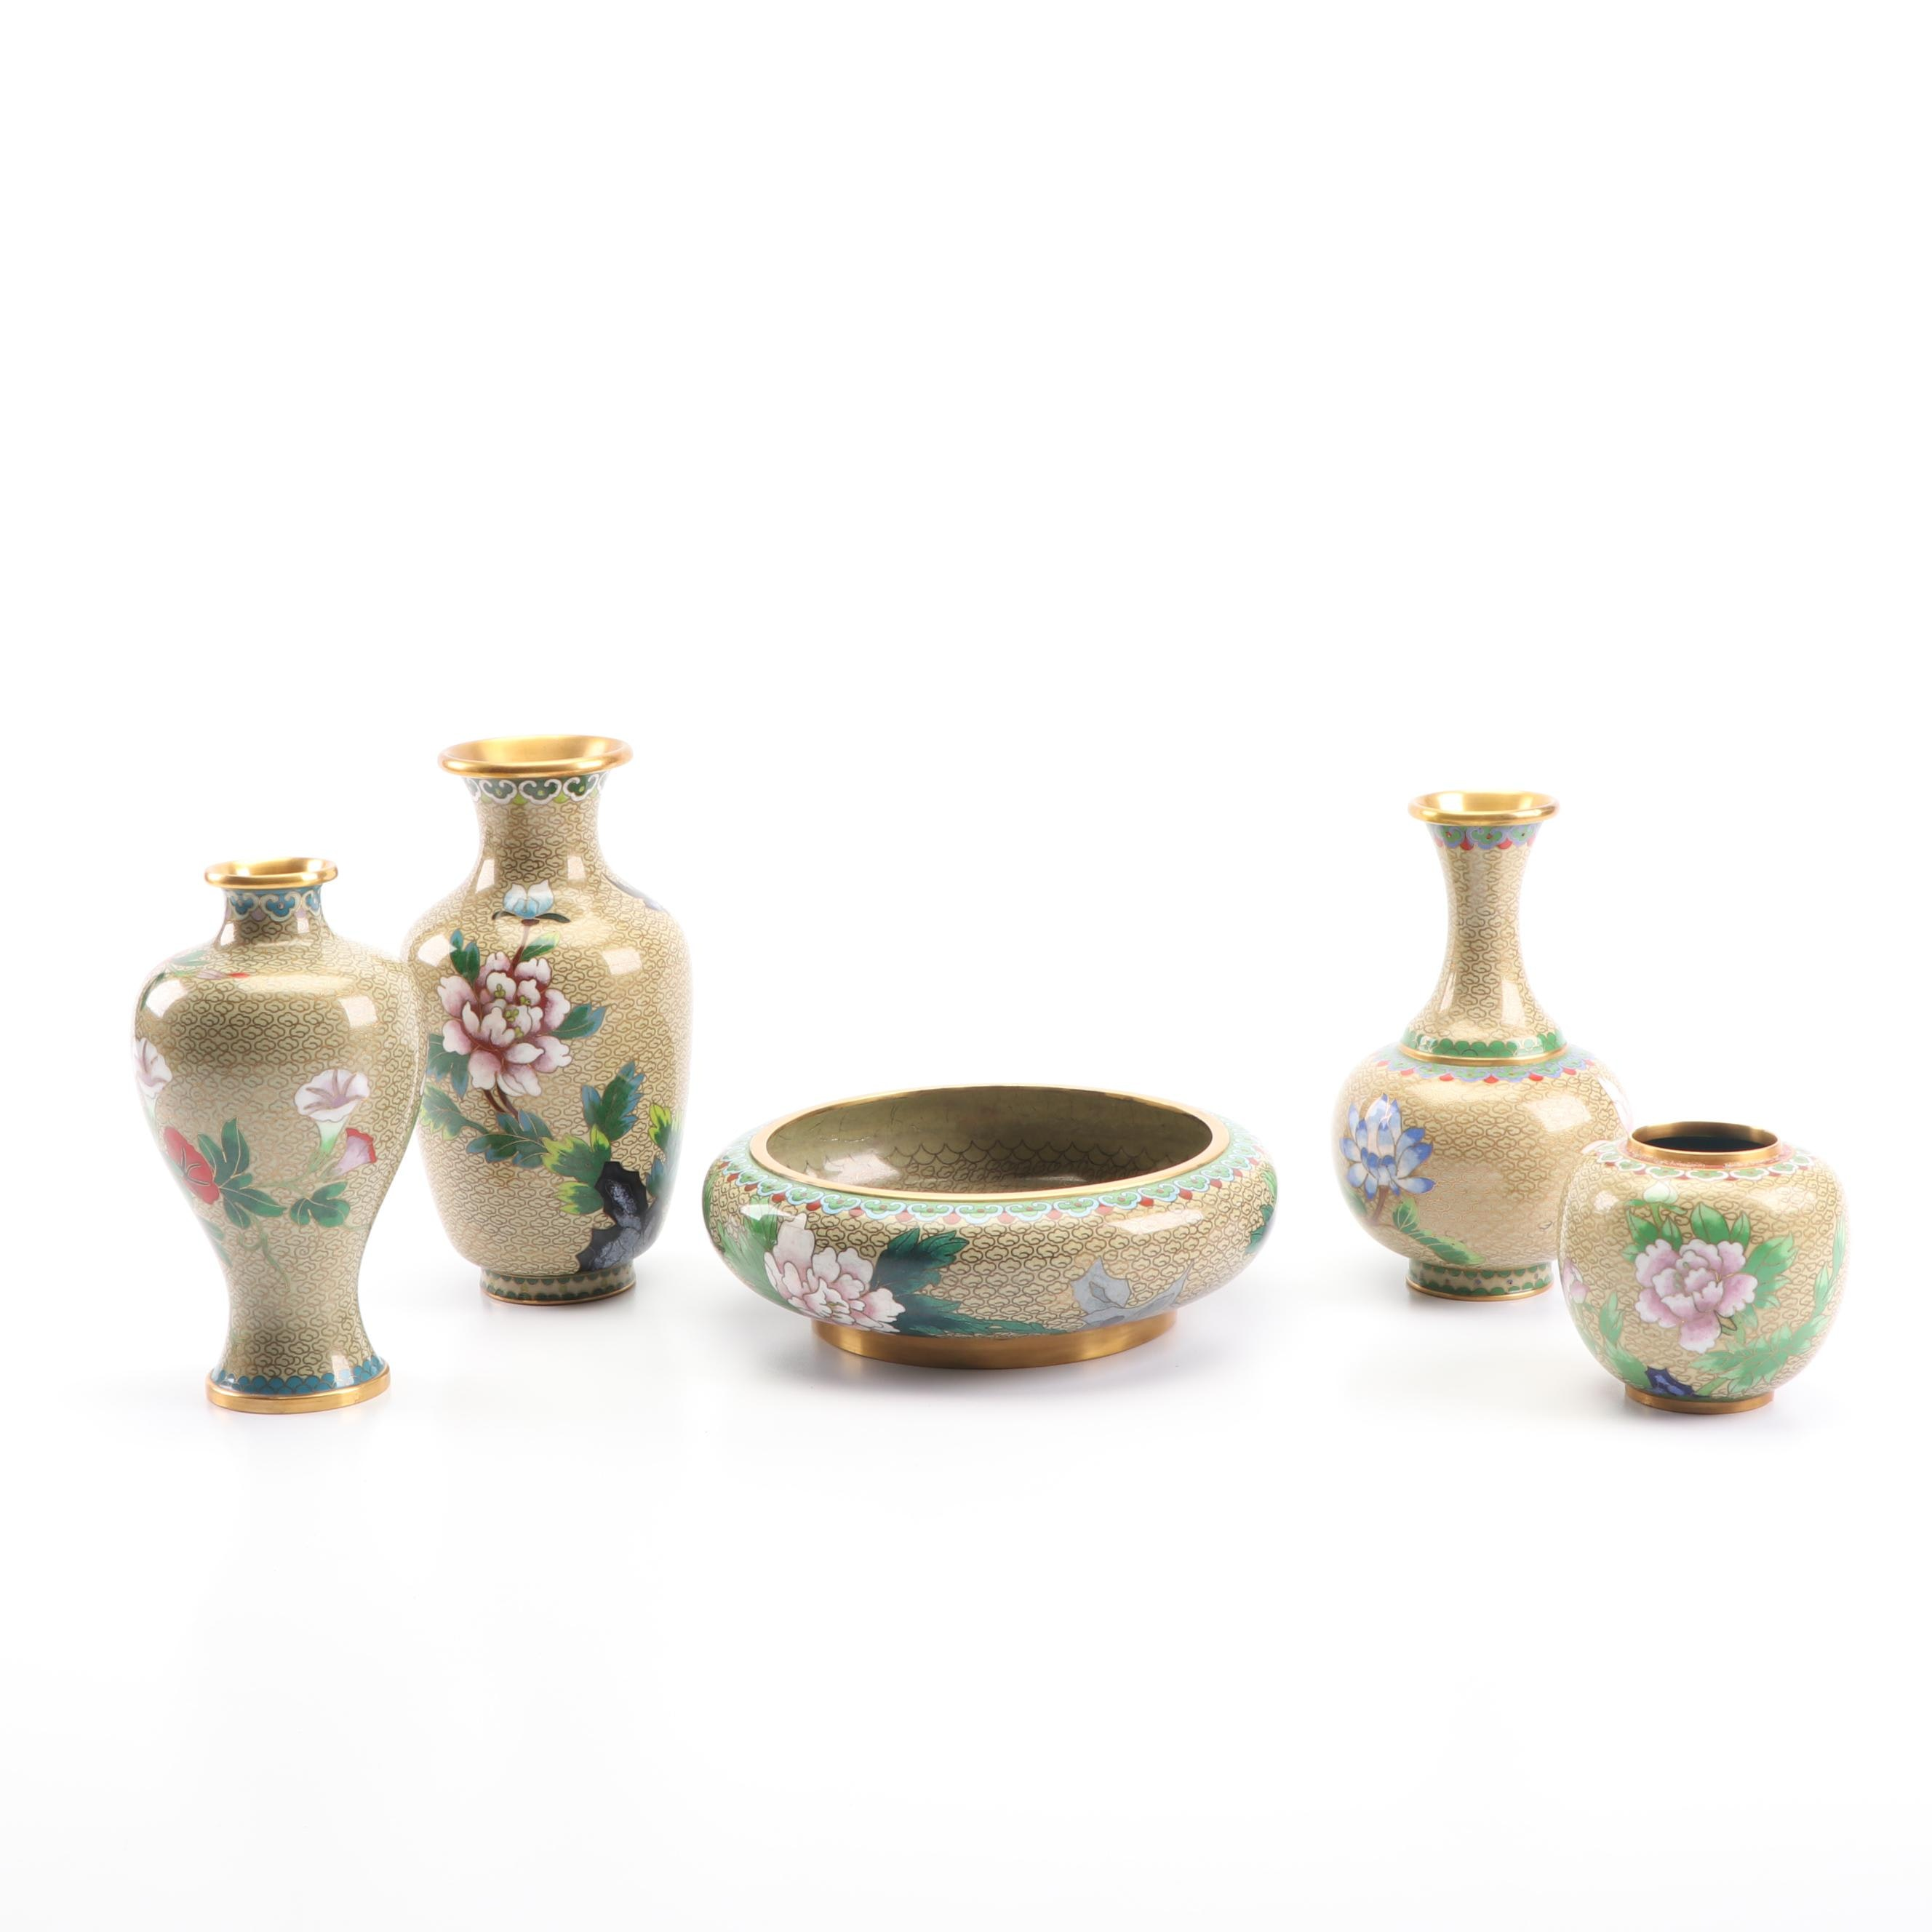 Chinese Cloisonné  Vases and Brush Washer